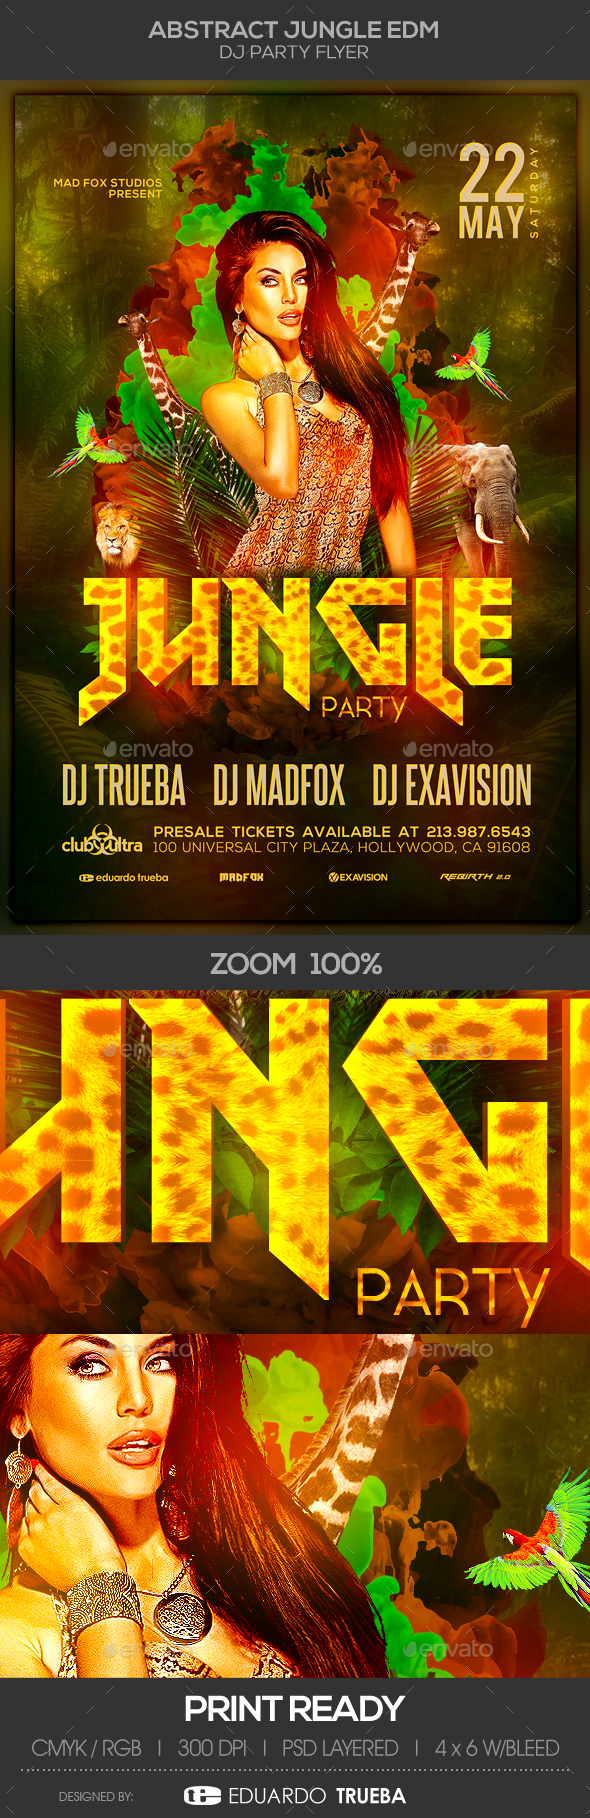 Abstract Jungle EDM Dj Party Flyer - Clubs & Parties Events